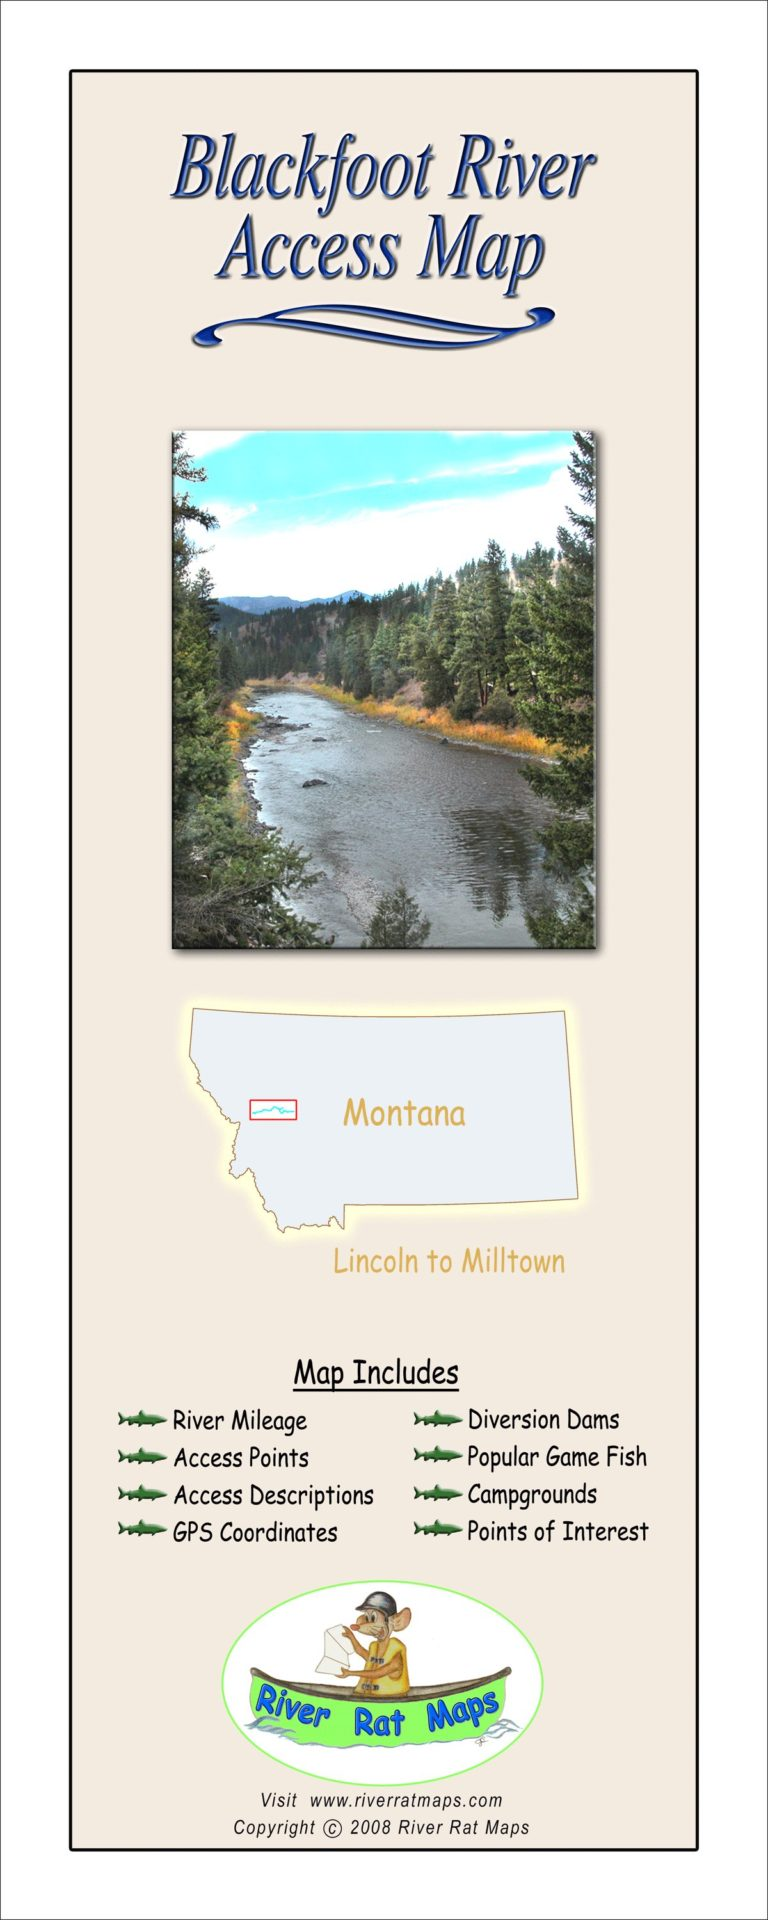 Blackfoot River Map by River Rat Maps